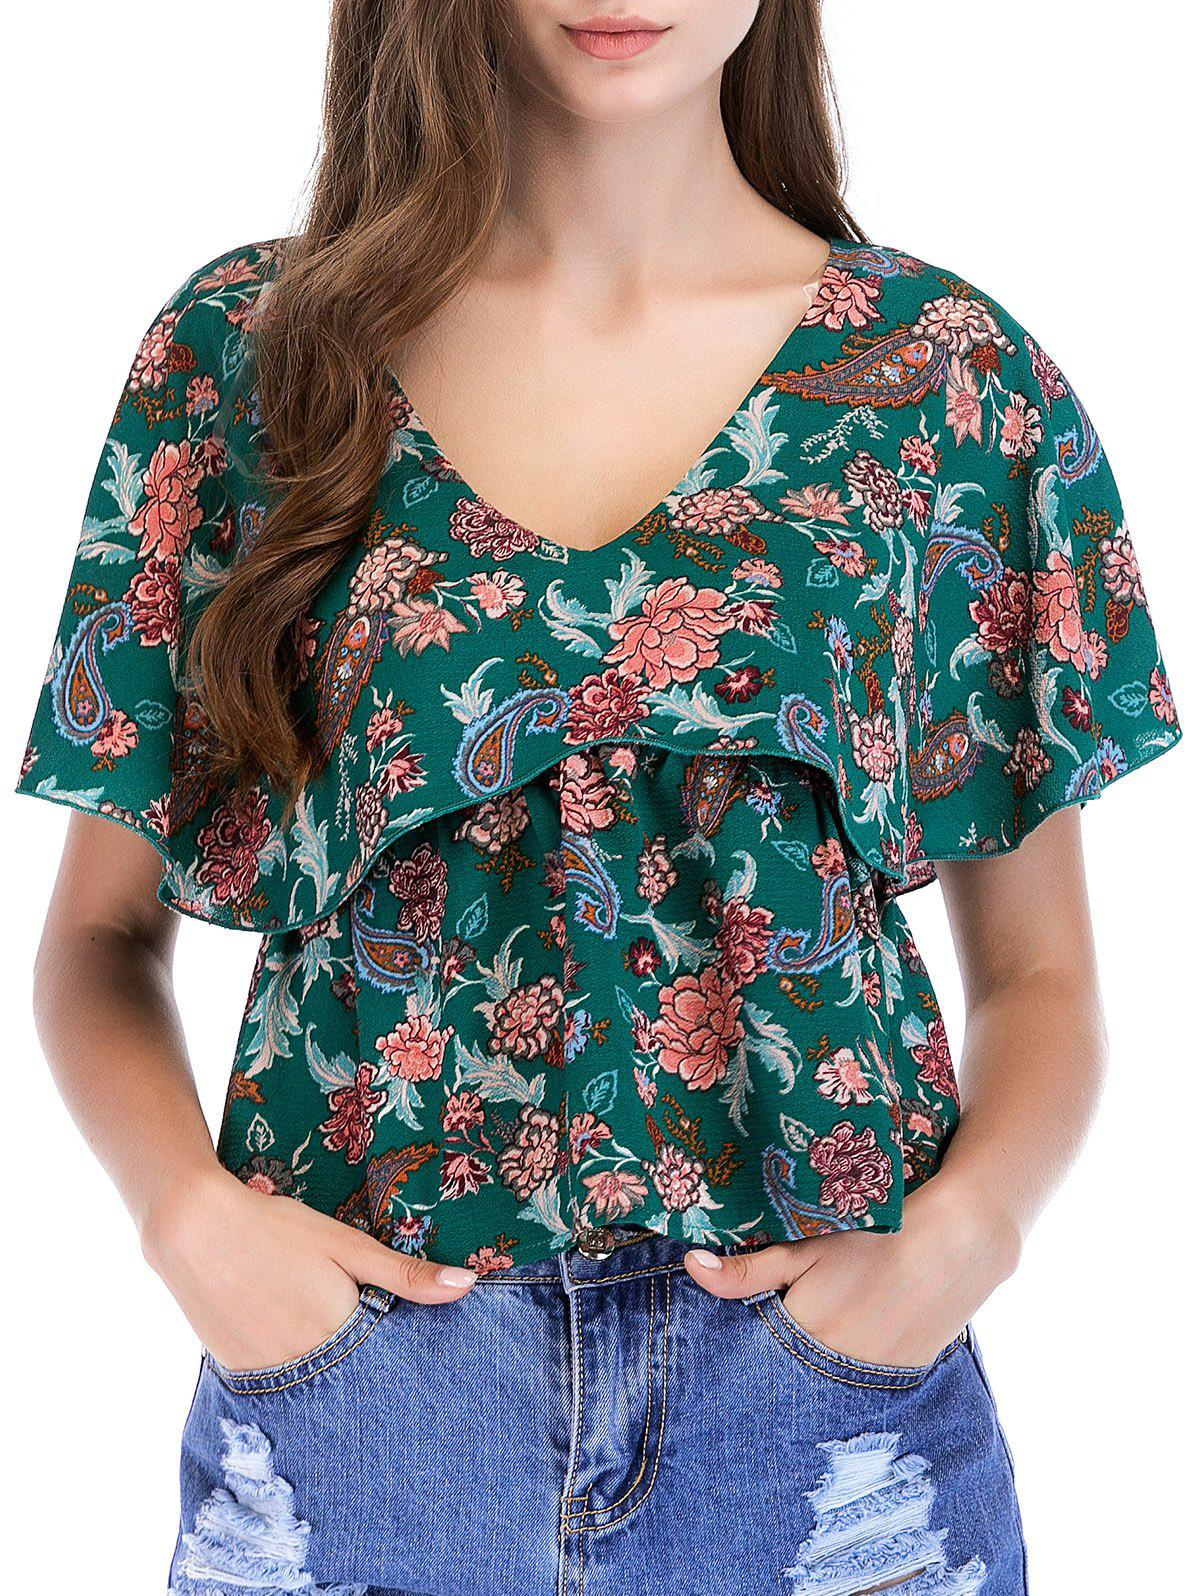 Ruffle Sleeve Floral Print Casual Blouse - multicolor A XL